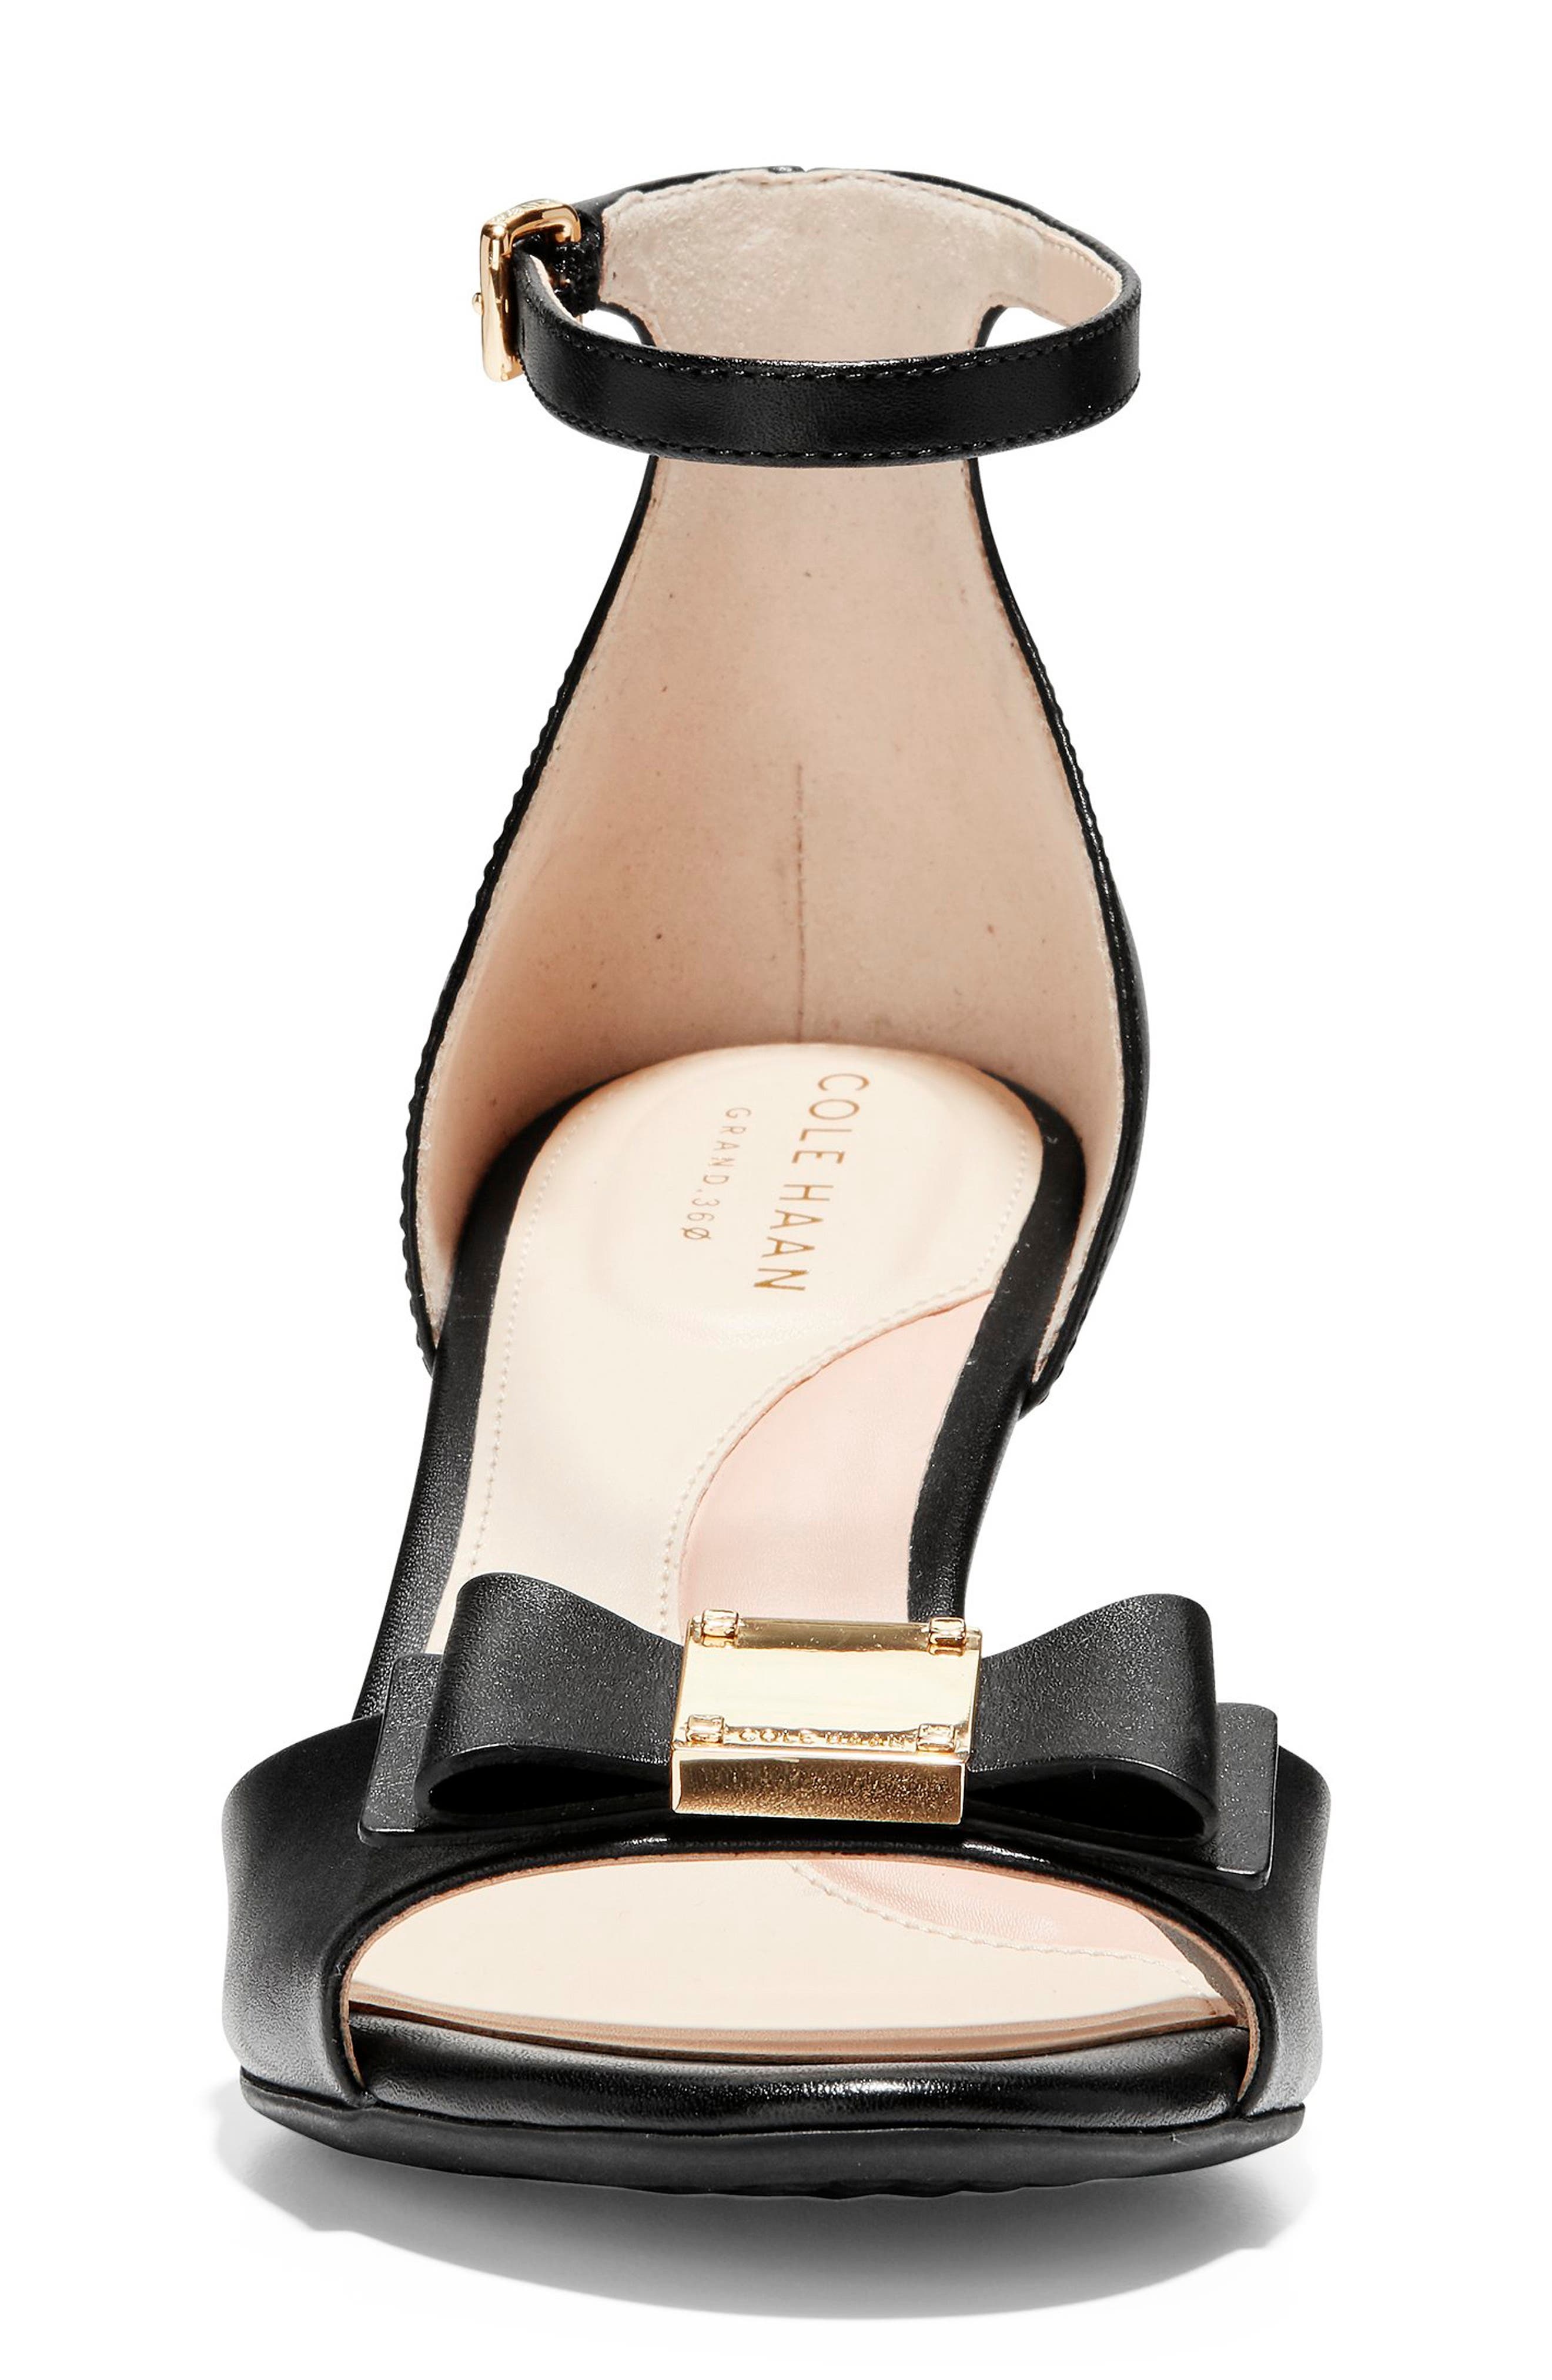 COLE HAAN, Tali Bow Wedge Sandal, Alternate thumbnail 4, color, BLACK LEATHER